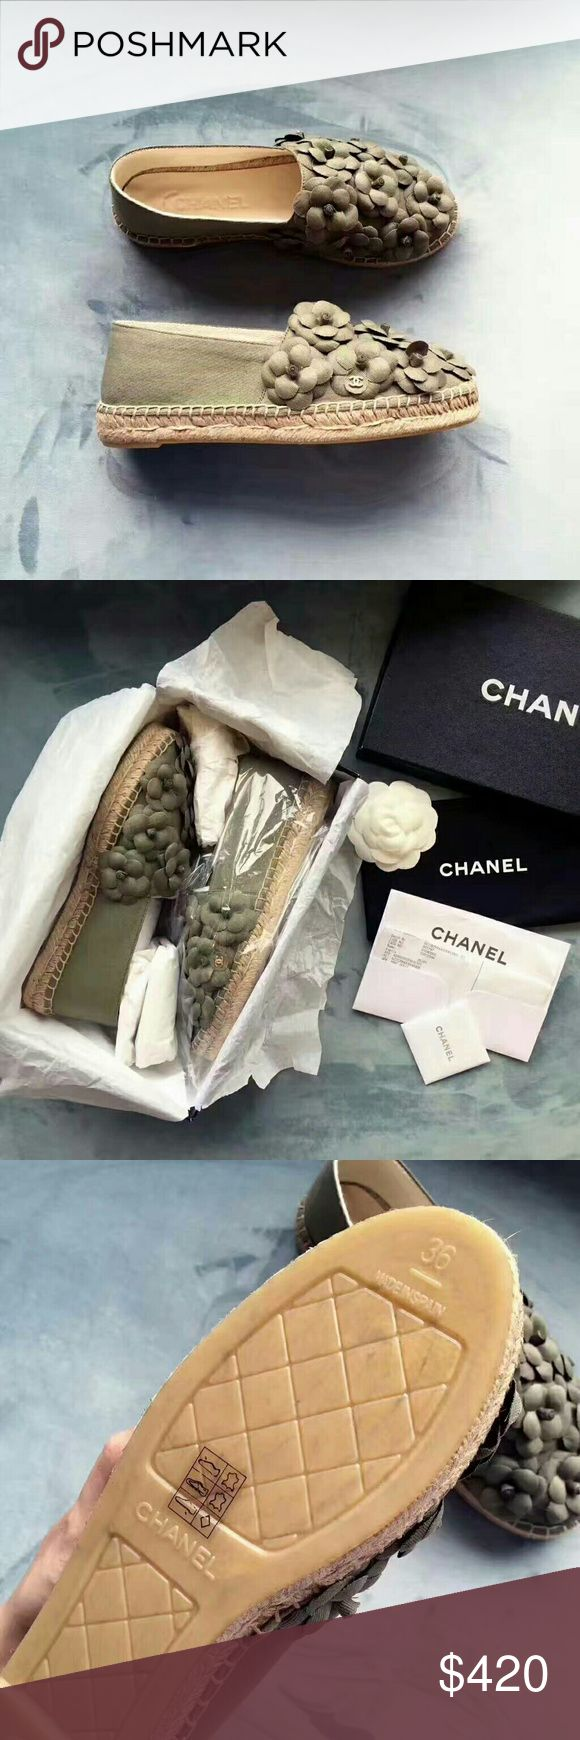 Chanel authentic 2017 new style flower espadrilles Chanel authentic 2017 new style flower espadrilles, size Euro 35-39, with box dustbag receipt, new style, very beautiful, if interest, contact clockdadida  @  gmail , better price, thanks Chanel Shoes Espadrilles